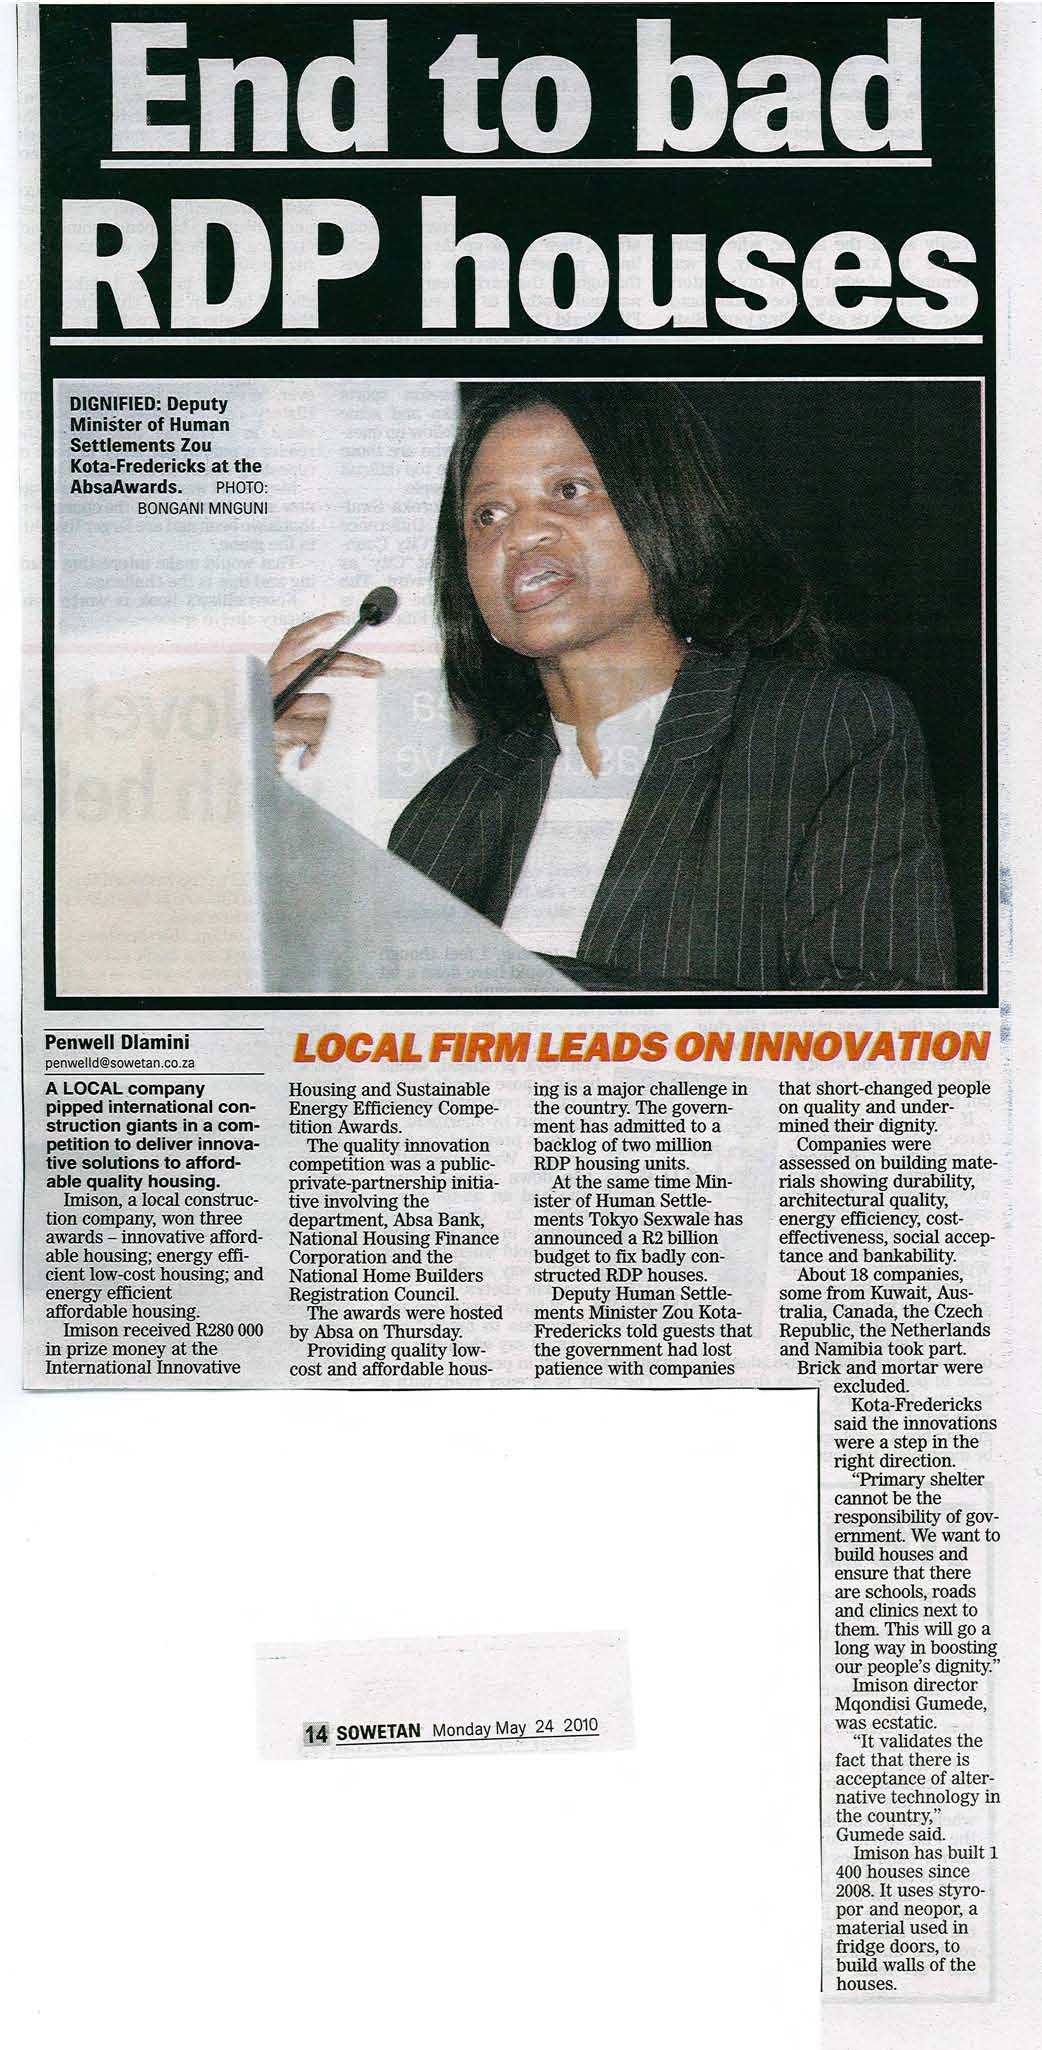 EndtobadRDPHouses-SowetanMonday14May2010